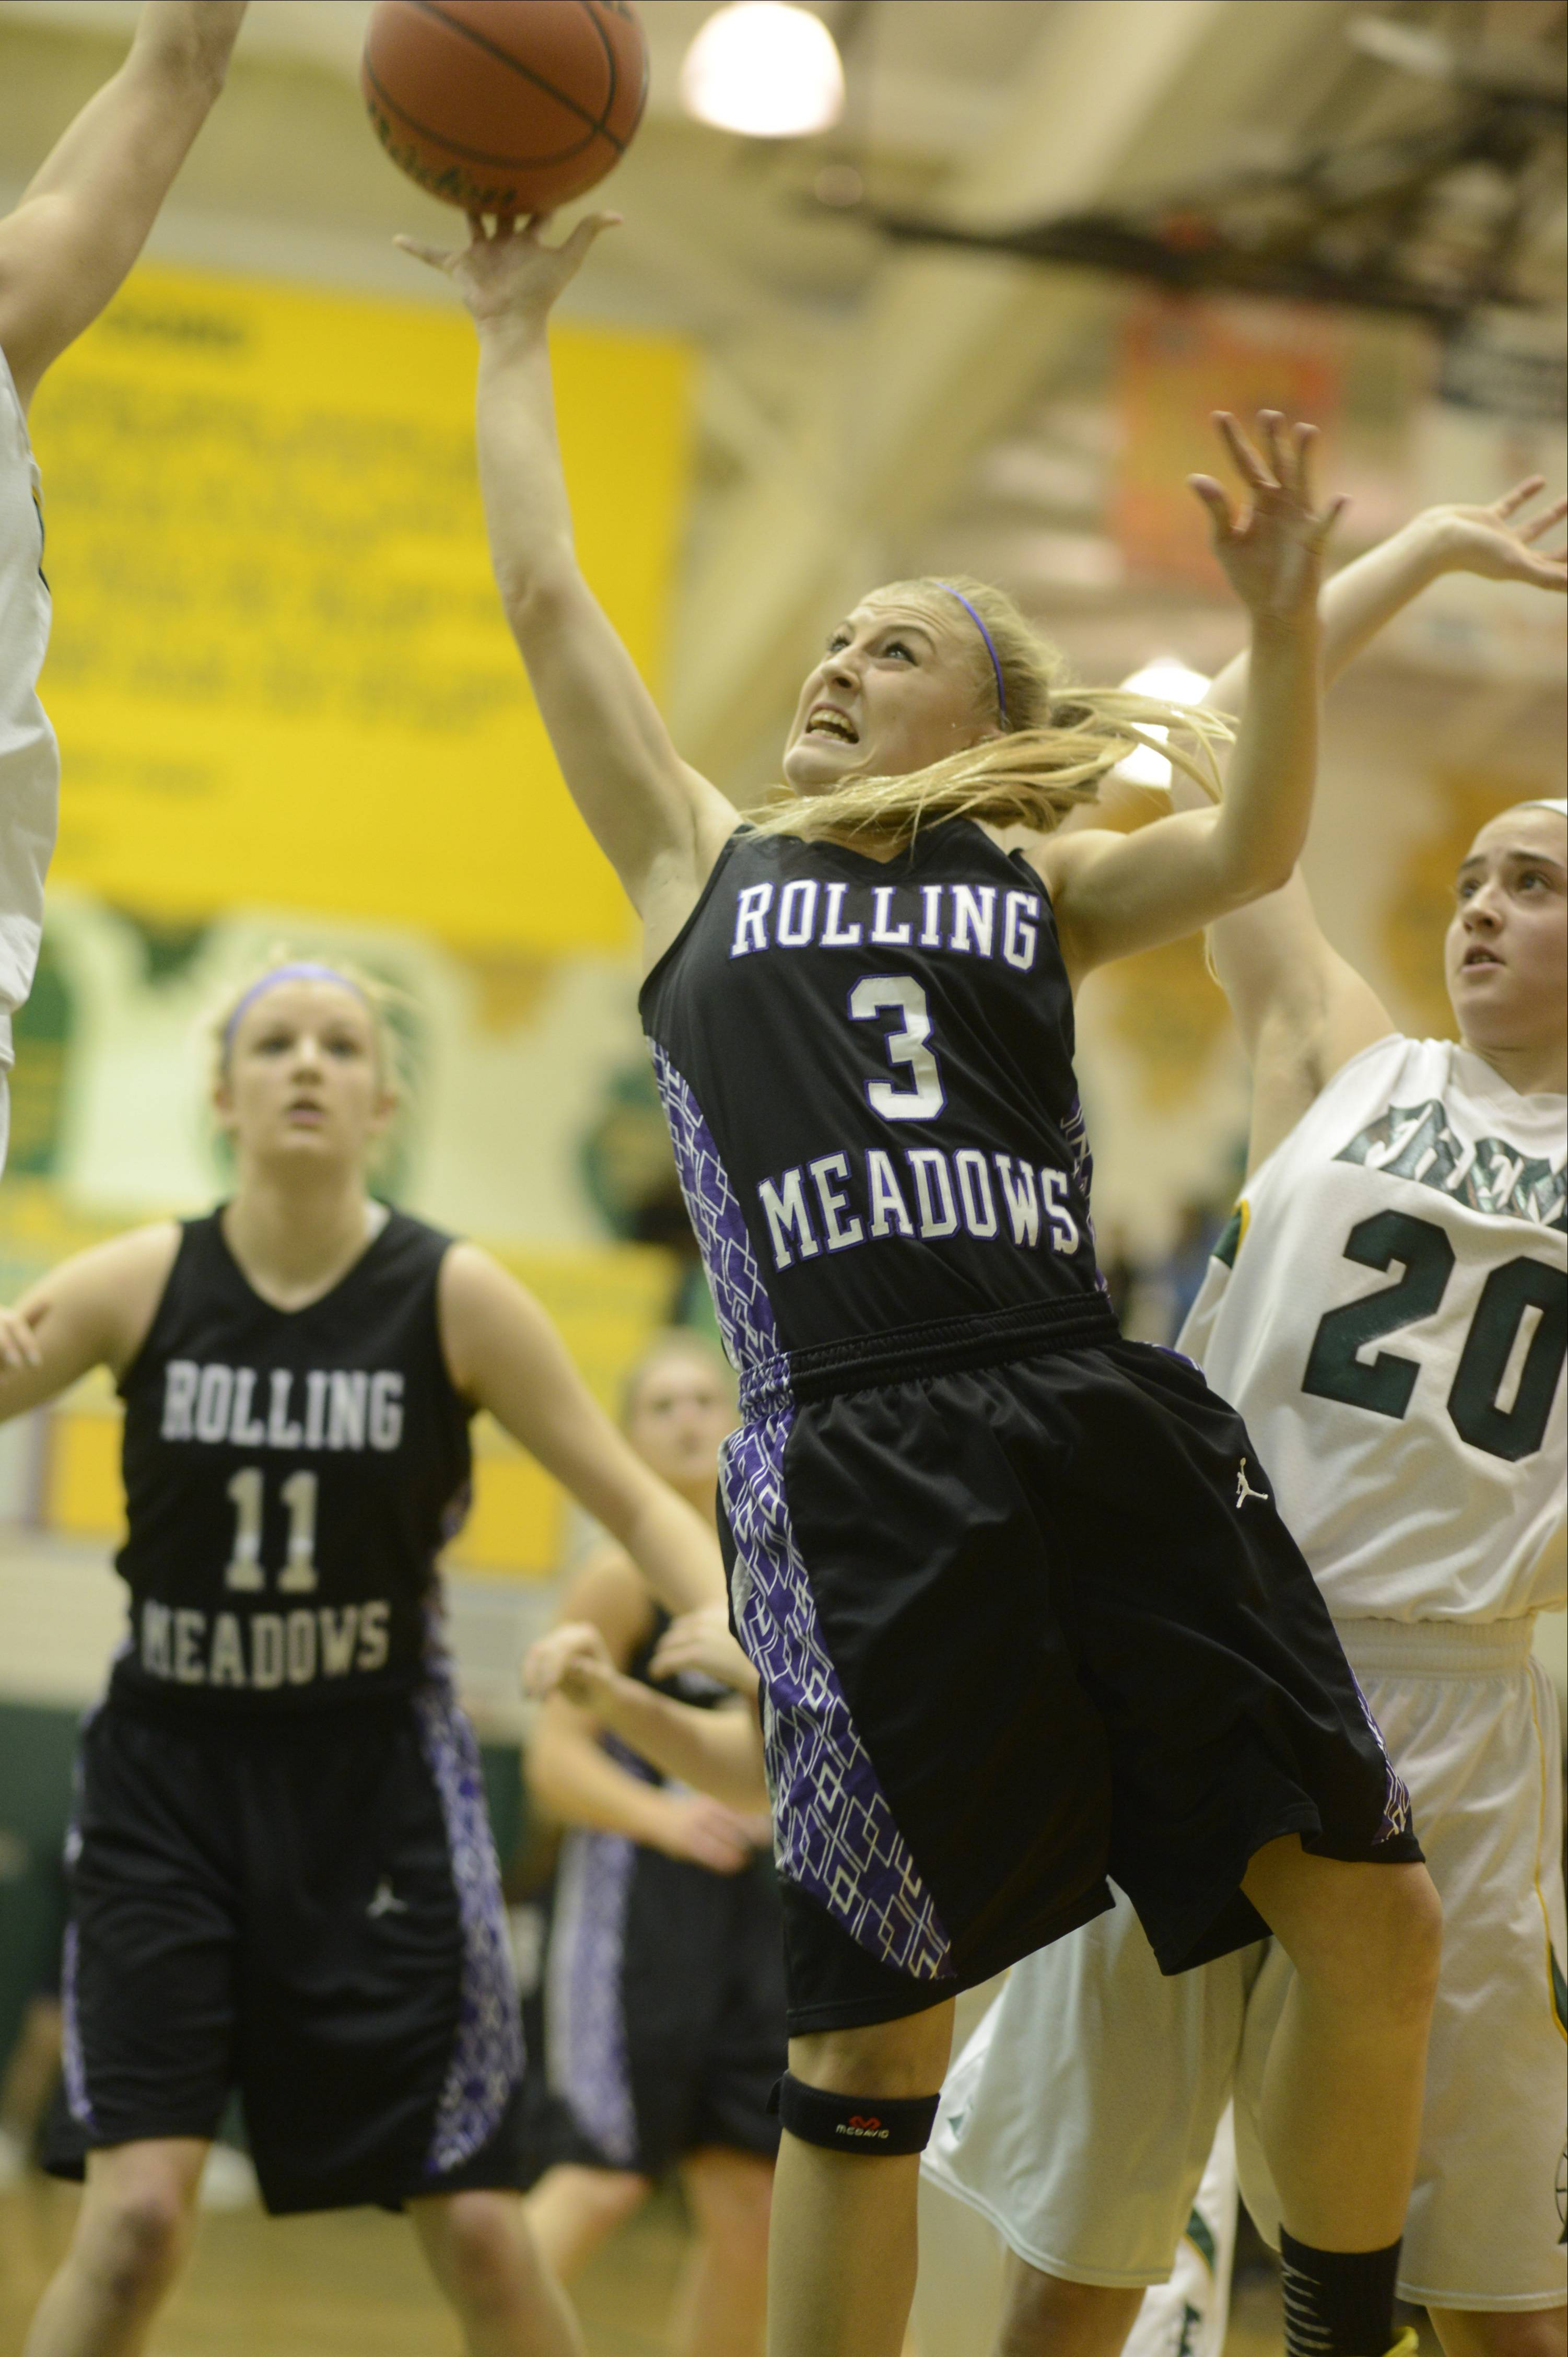 Photos from the Fremd vs. Rolling Meadows girls basketball game on Wednesday, February 12th, in Palatine.